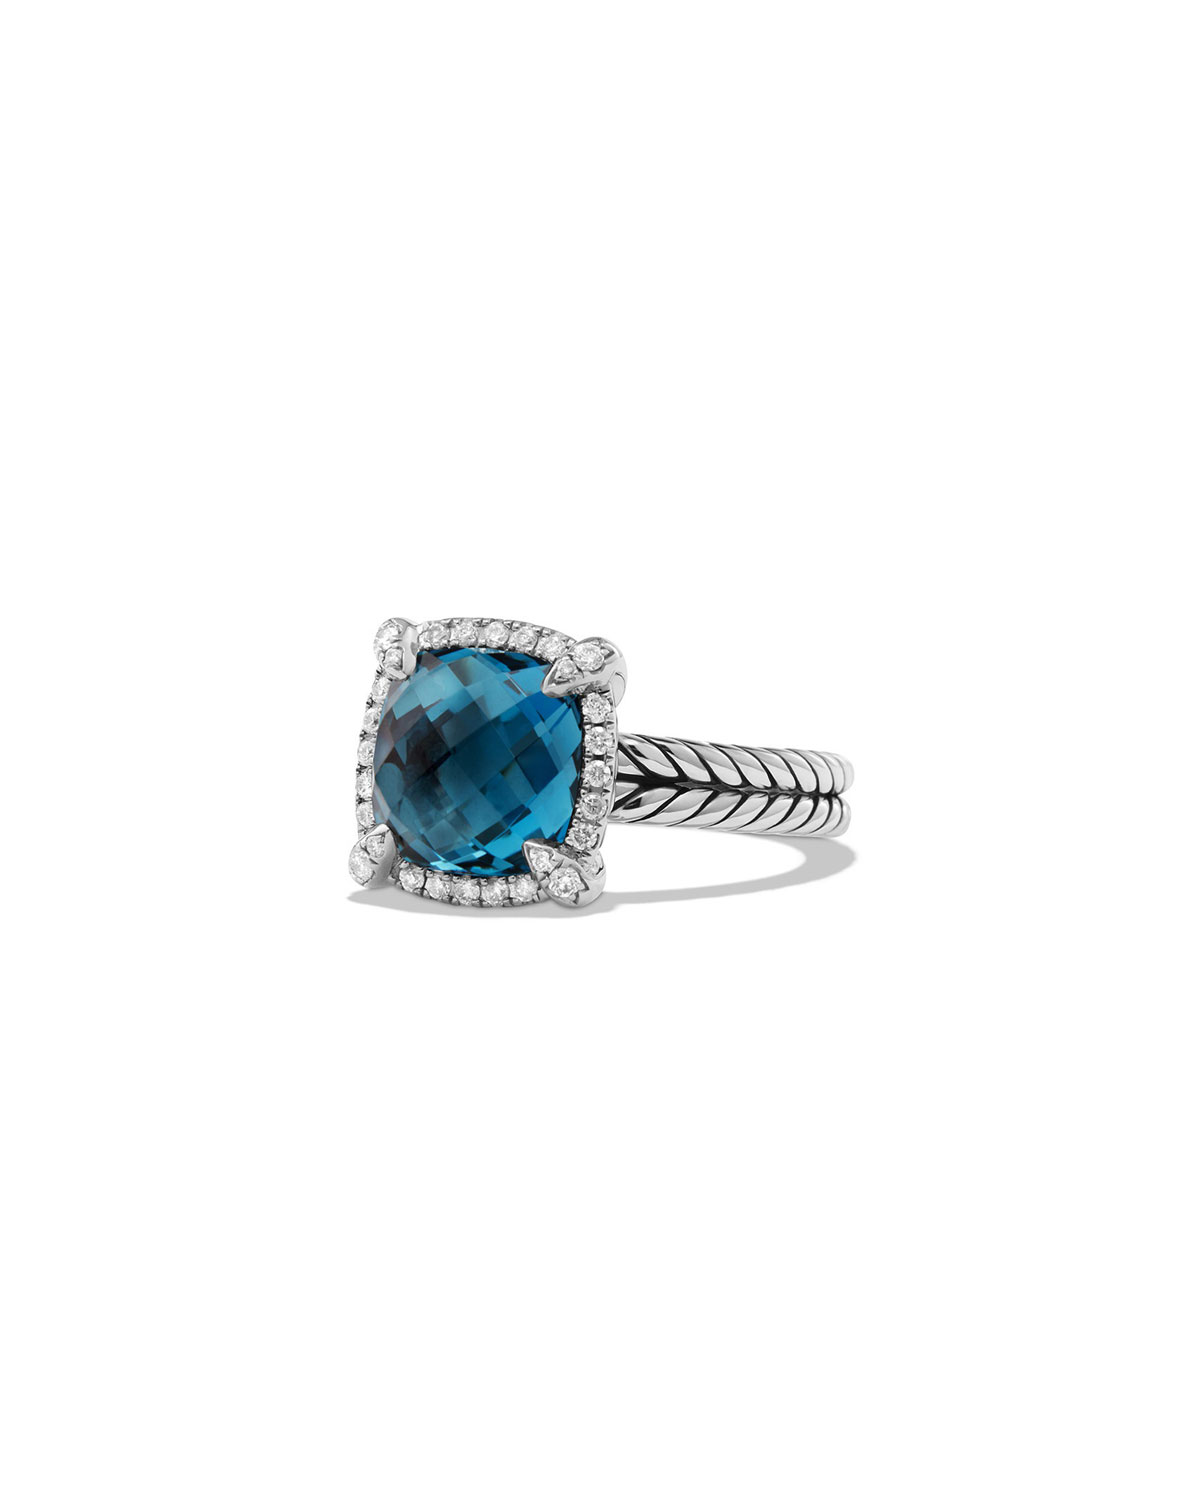 David Yurman 9mm Chatelaine Ring with Diamonds in Blue Topaz